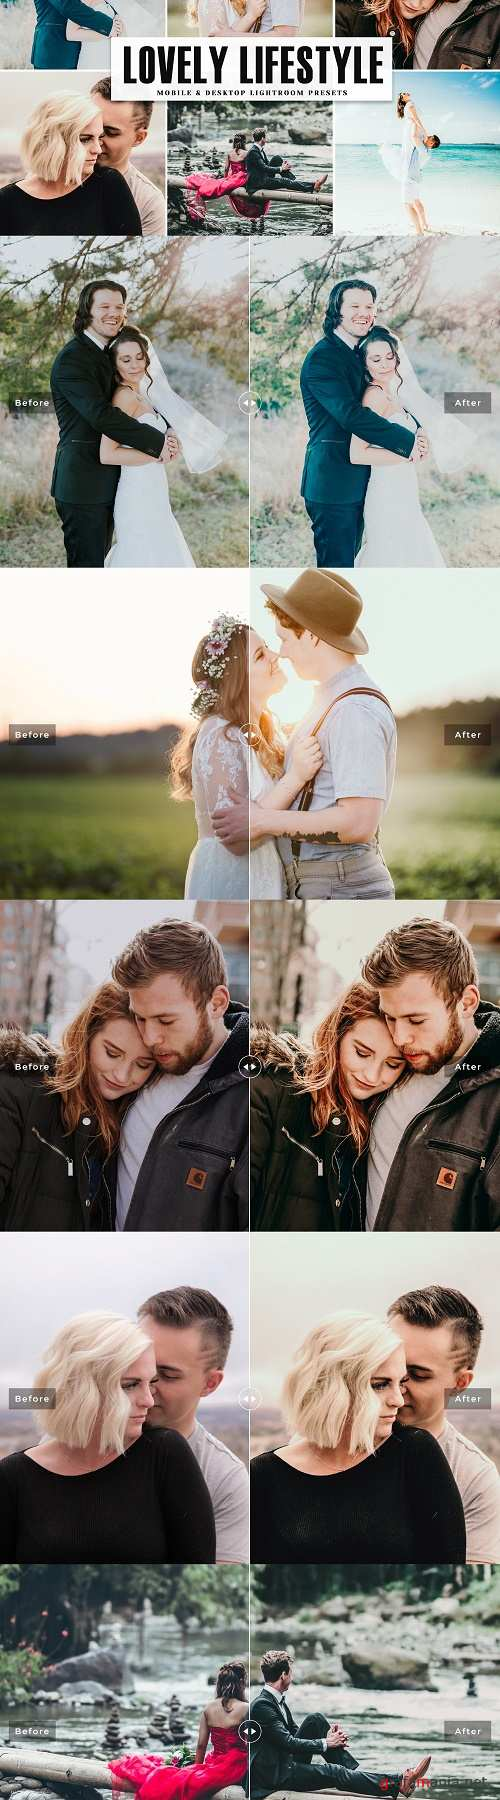 Lovely Lifestyle Lightroom Presets - 4041696